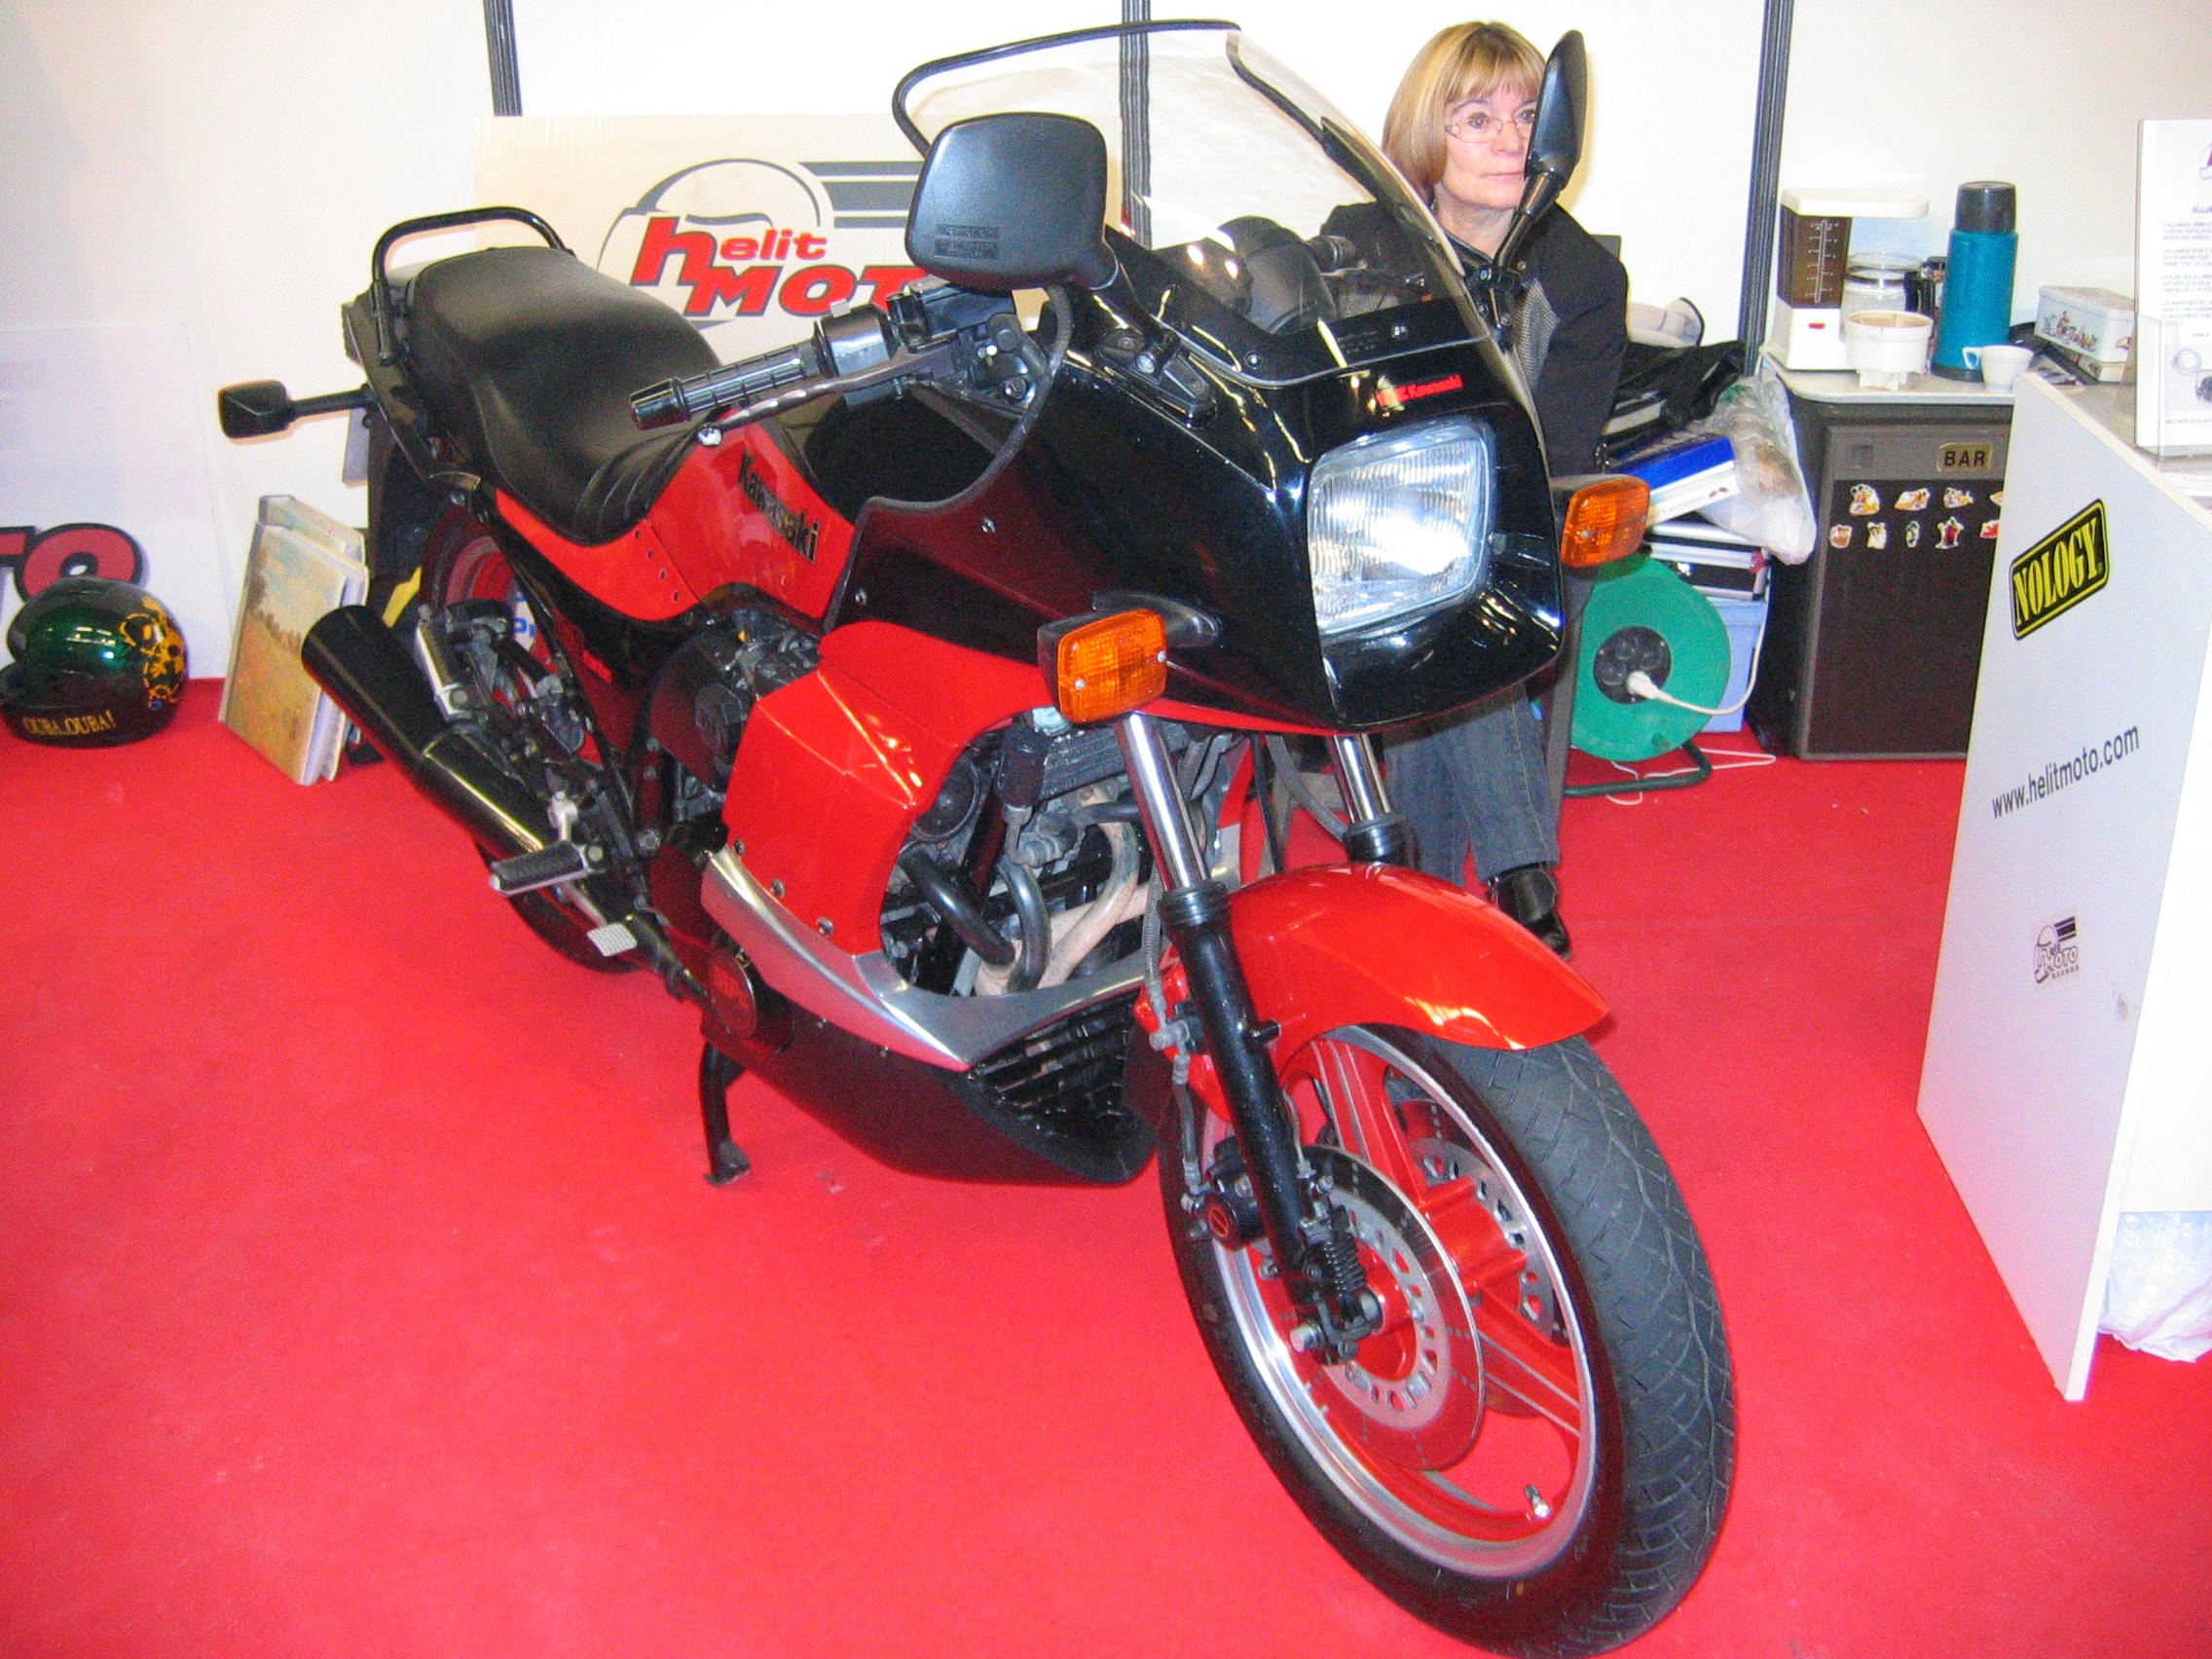 Kawasaki GPZ750 Turbo - Wikipedia